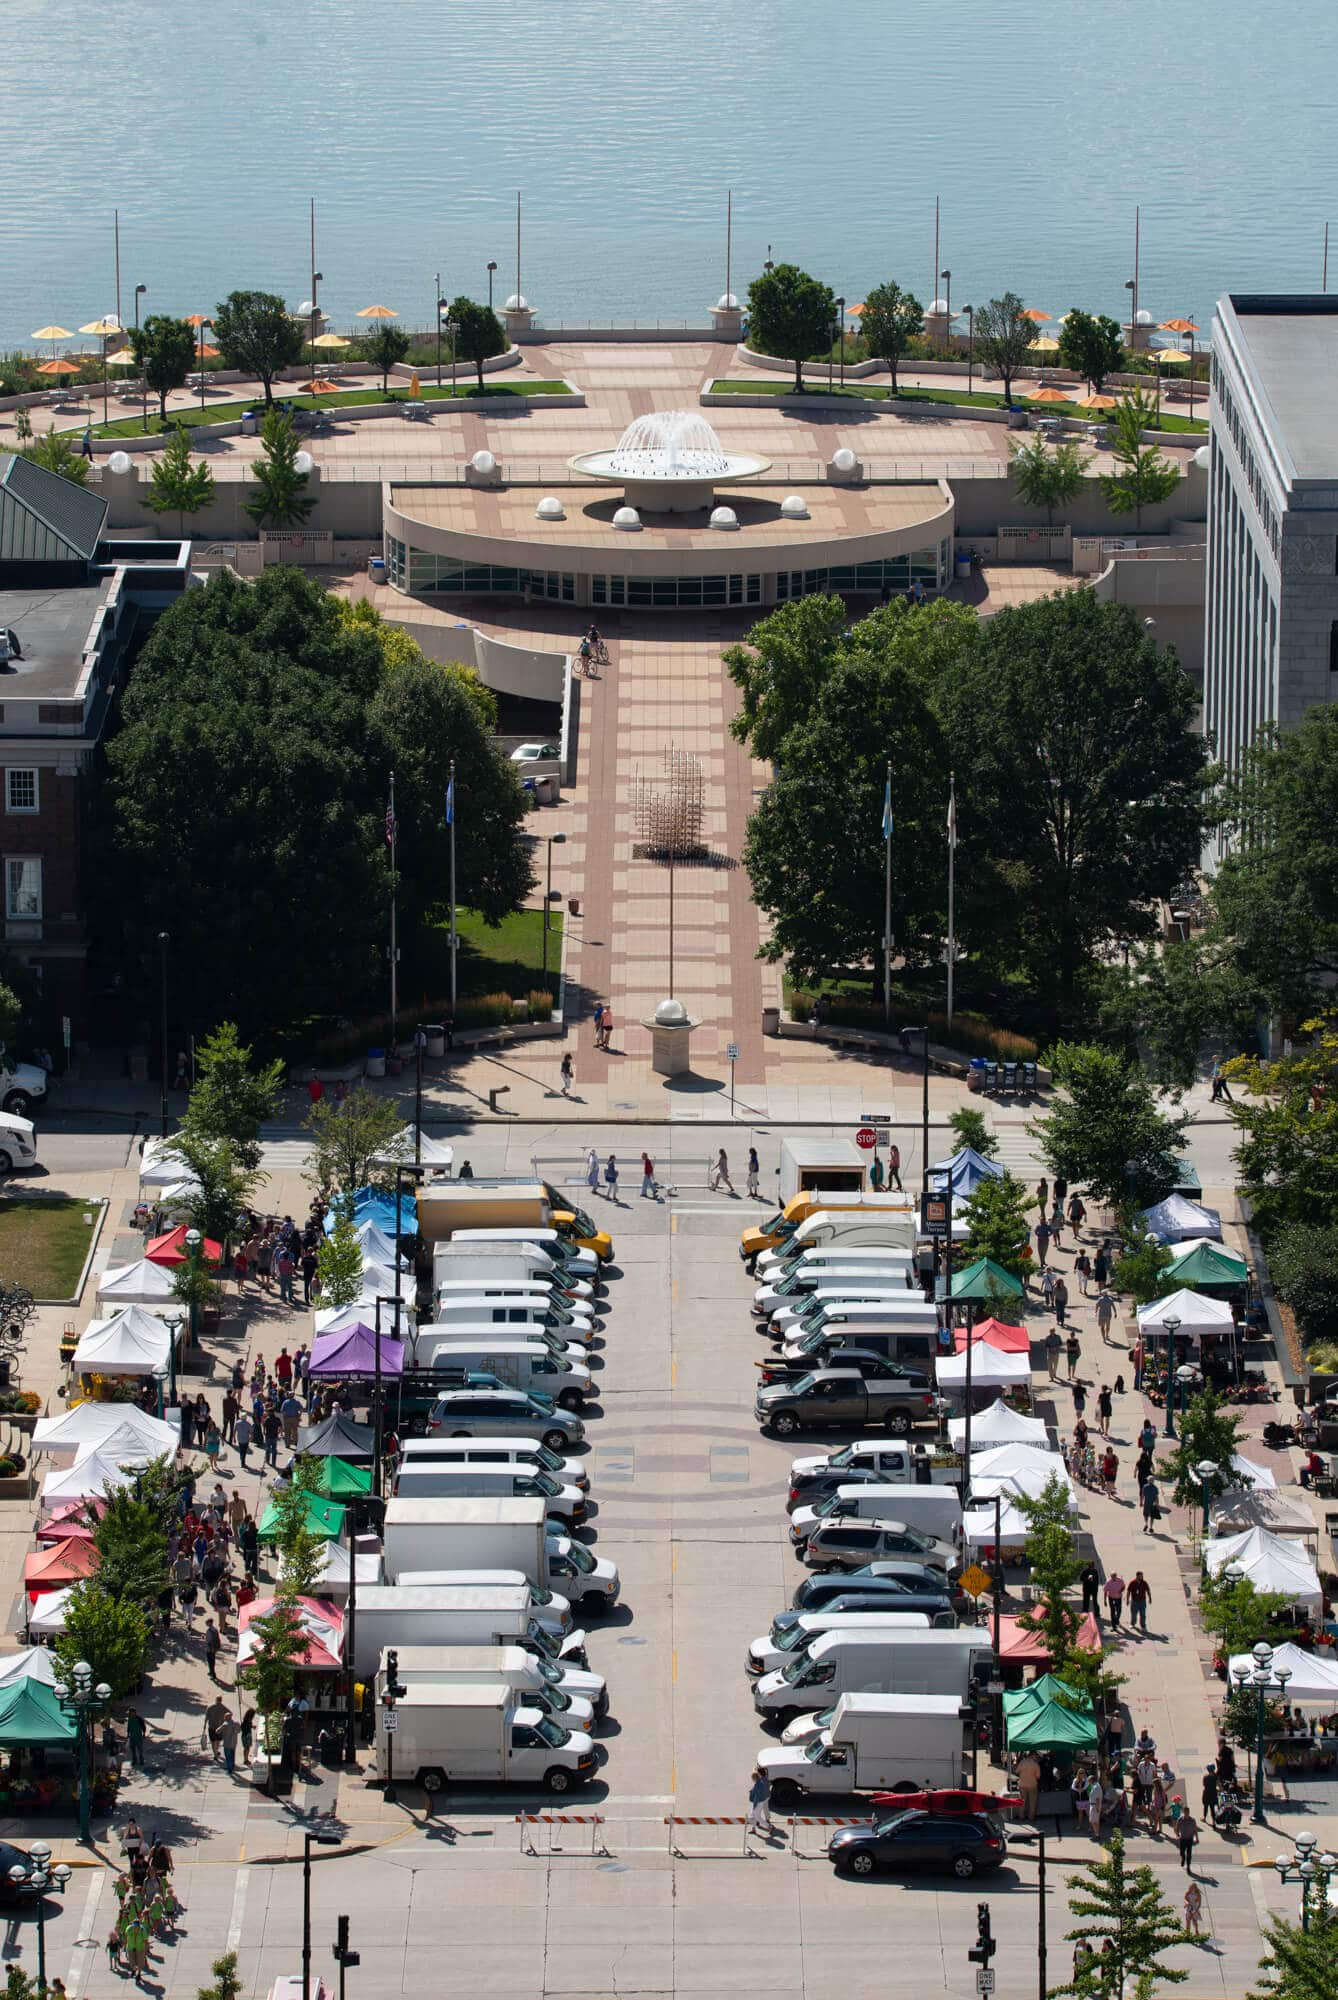 Wednesday Farmers Market and Olin Terrace and Monona Terrace Rooftop and Lake Monona